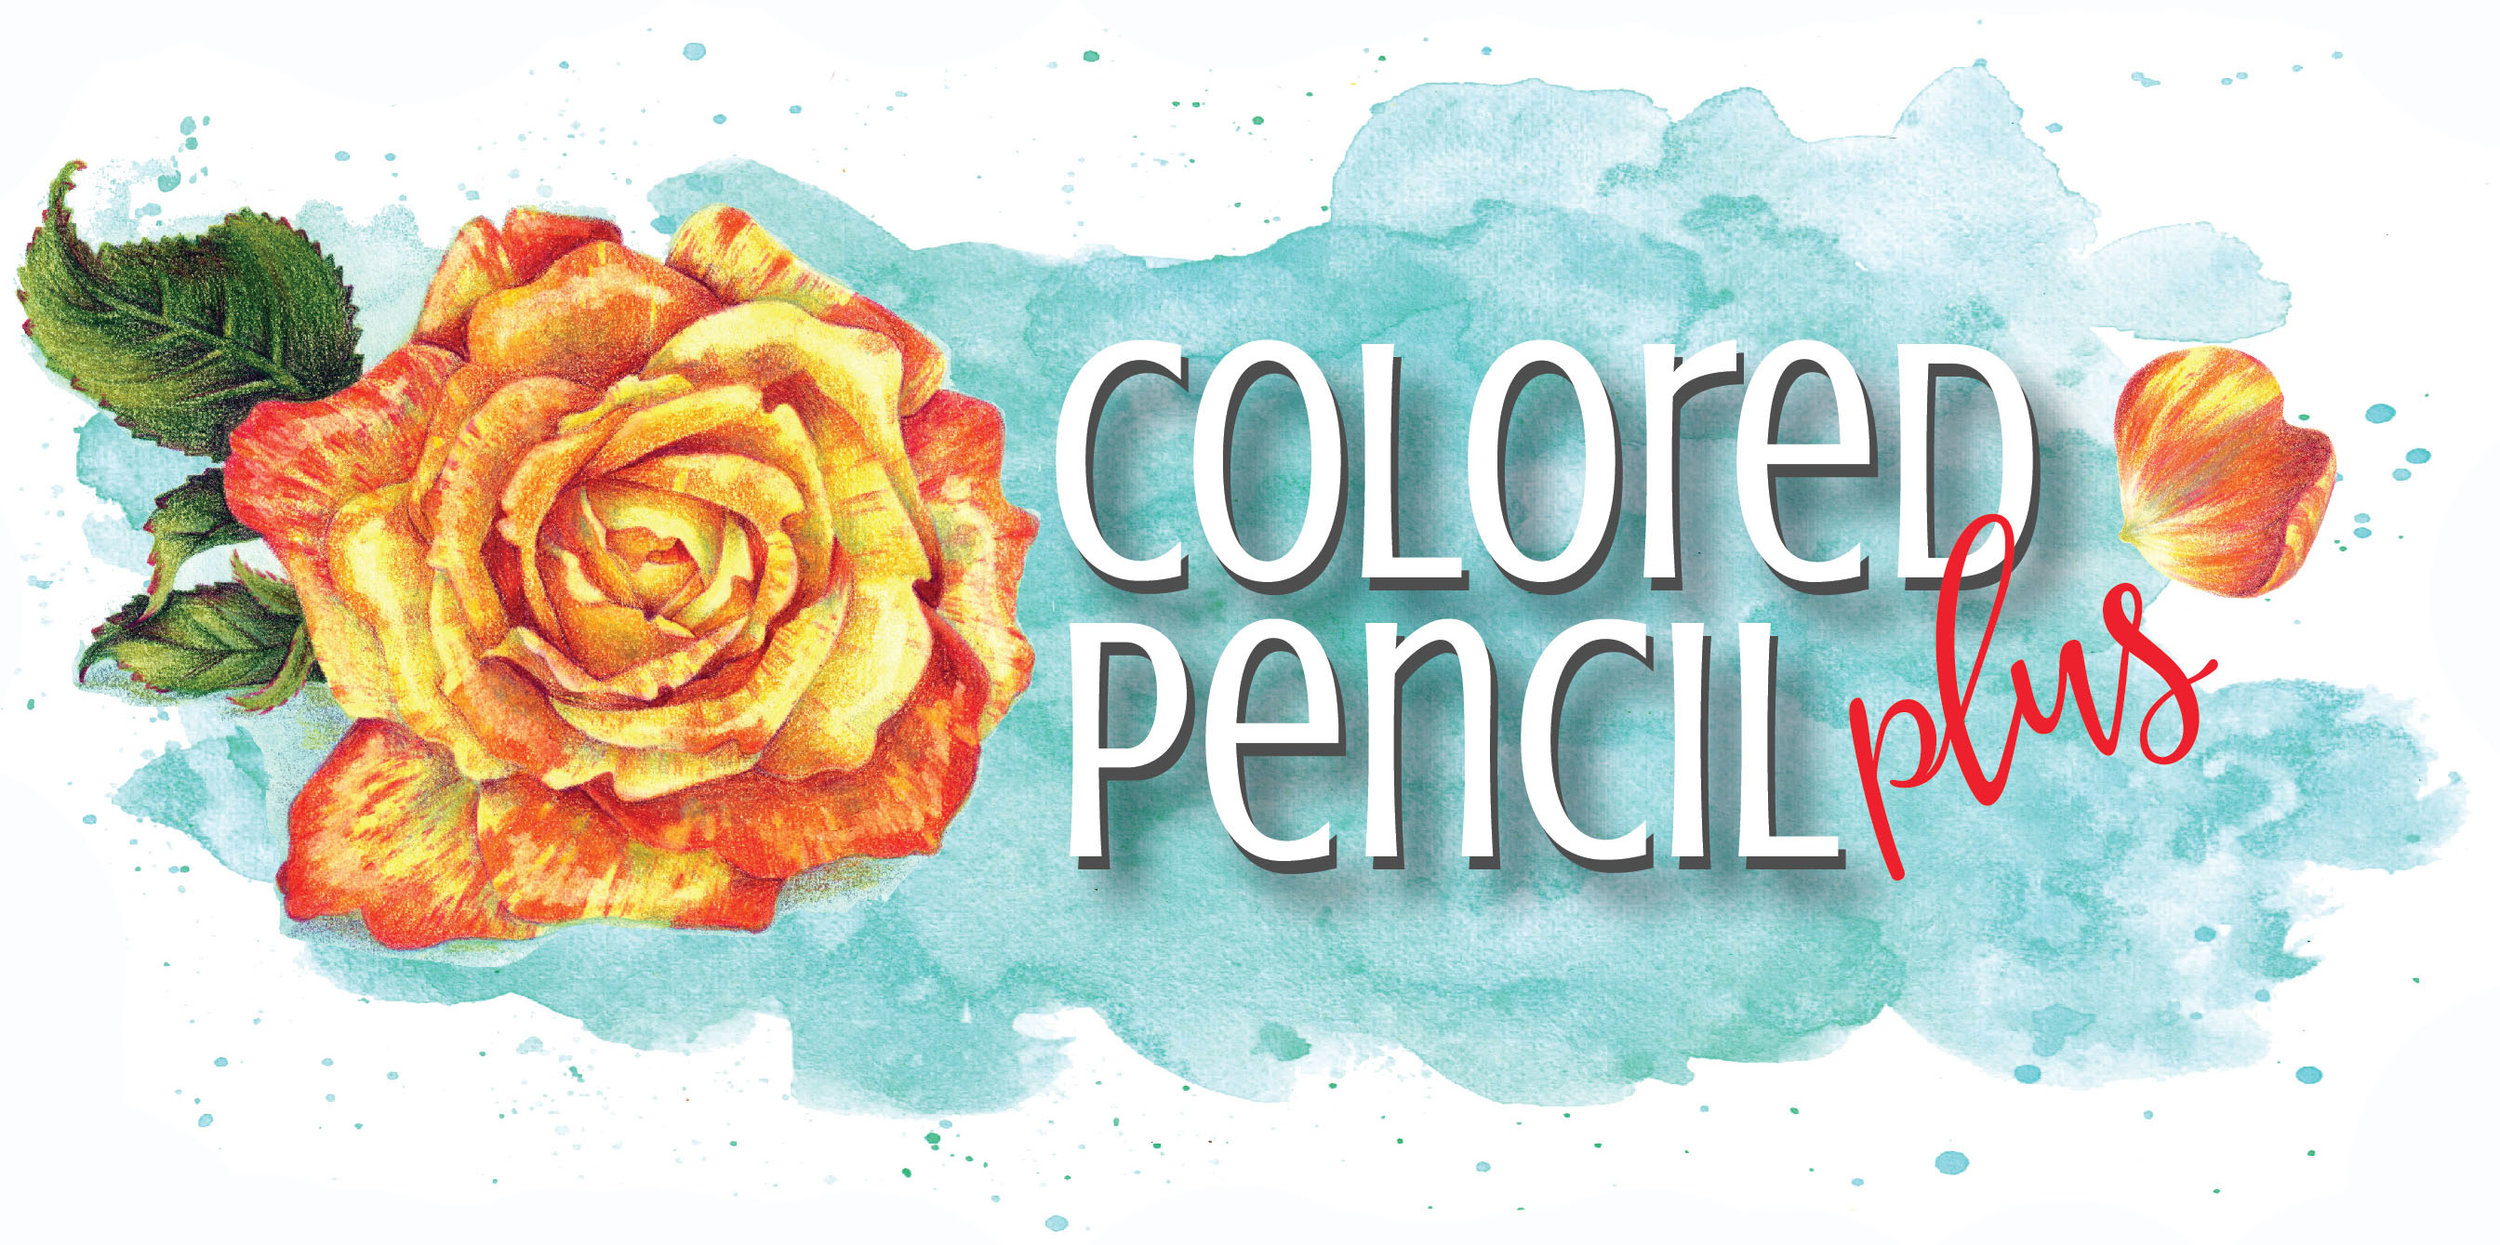 Learn to use colored pencil with artistry and amazing dimension. If you want to move beyond fill-in-the-blank style coloring, you need to ditch the crafty tutorials. Color like an artist! | ColoredPencilPlus.com